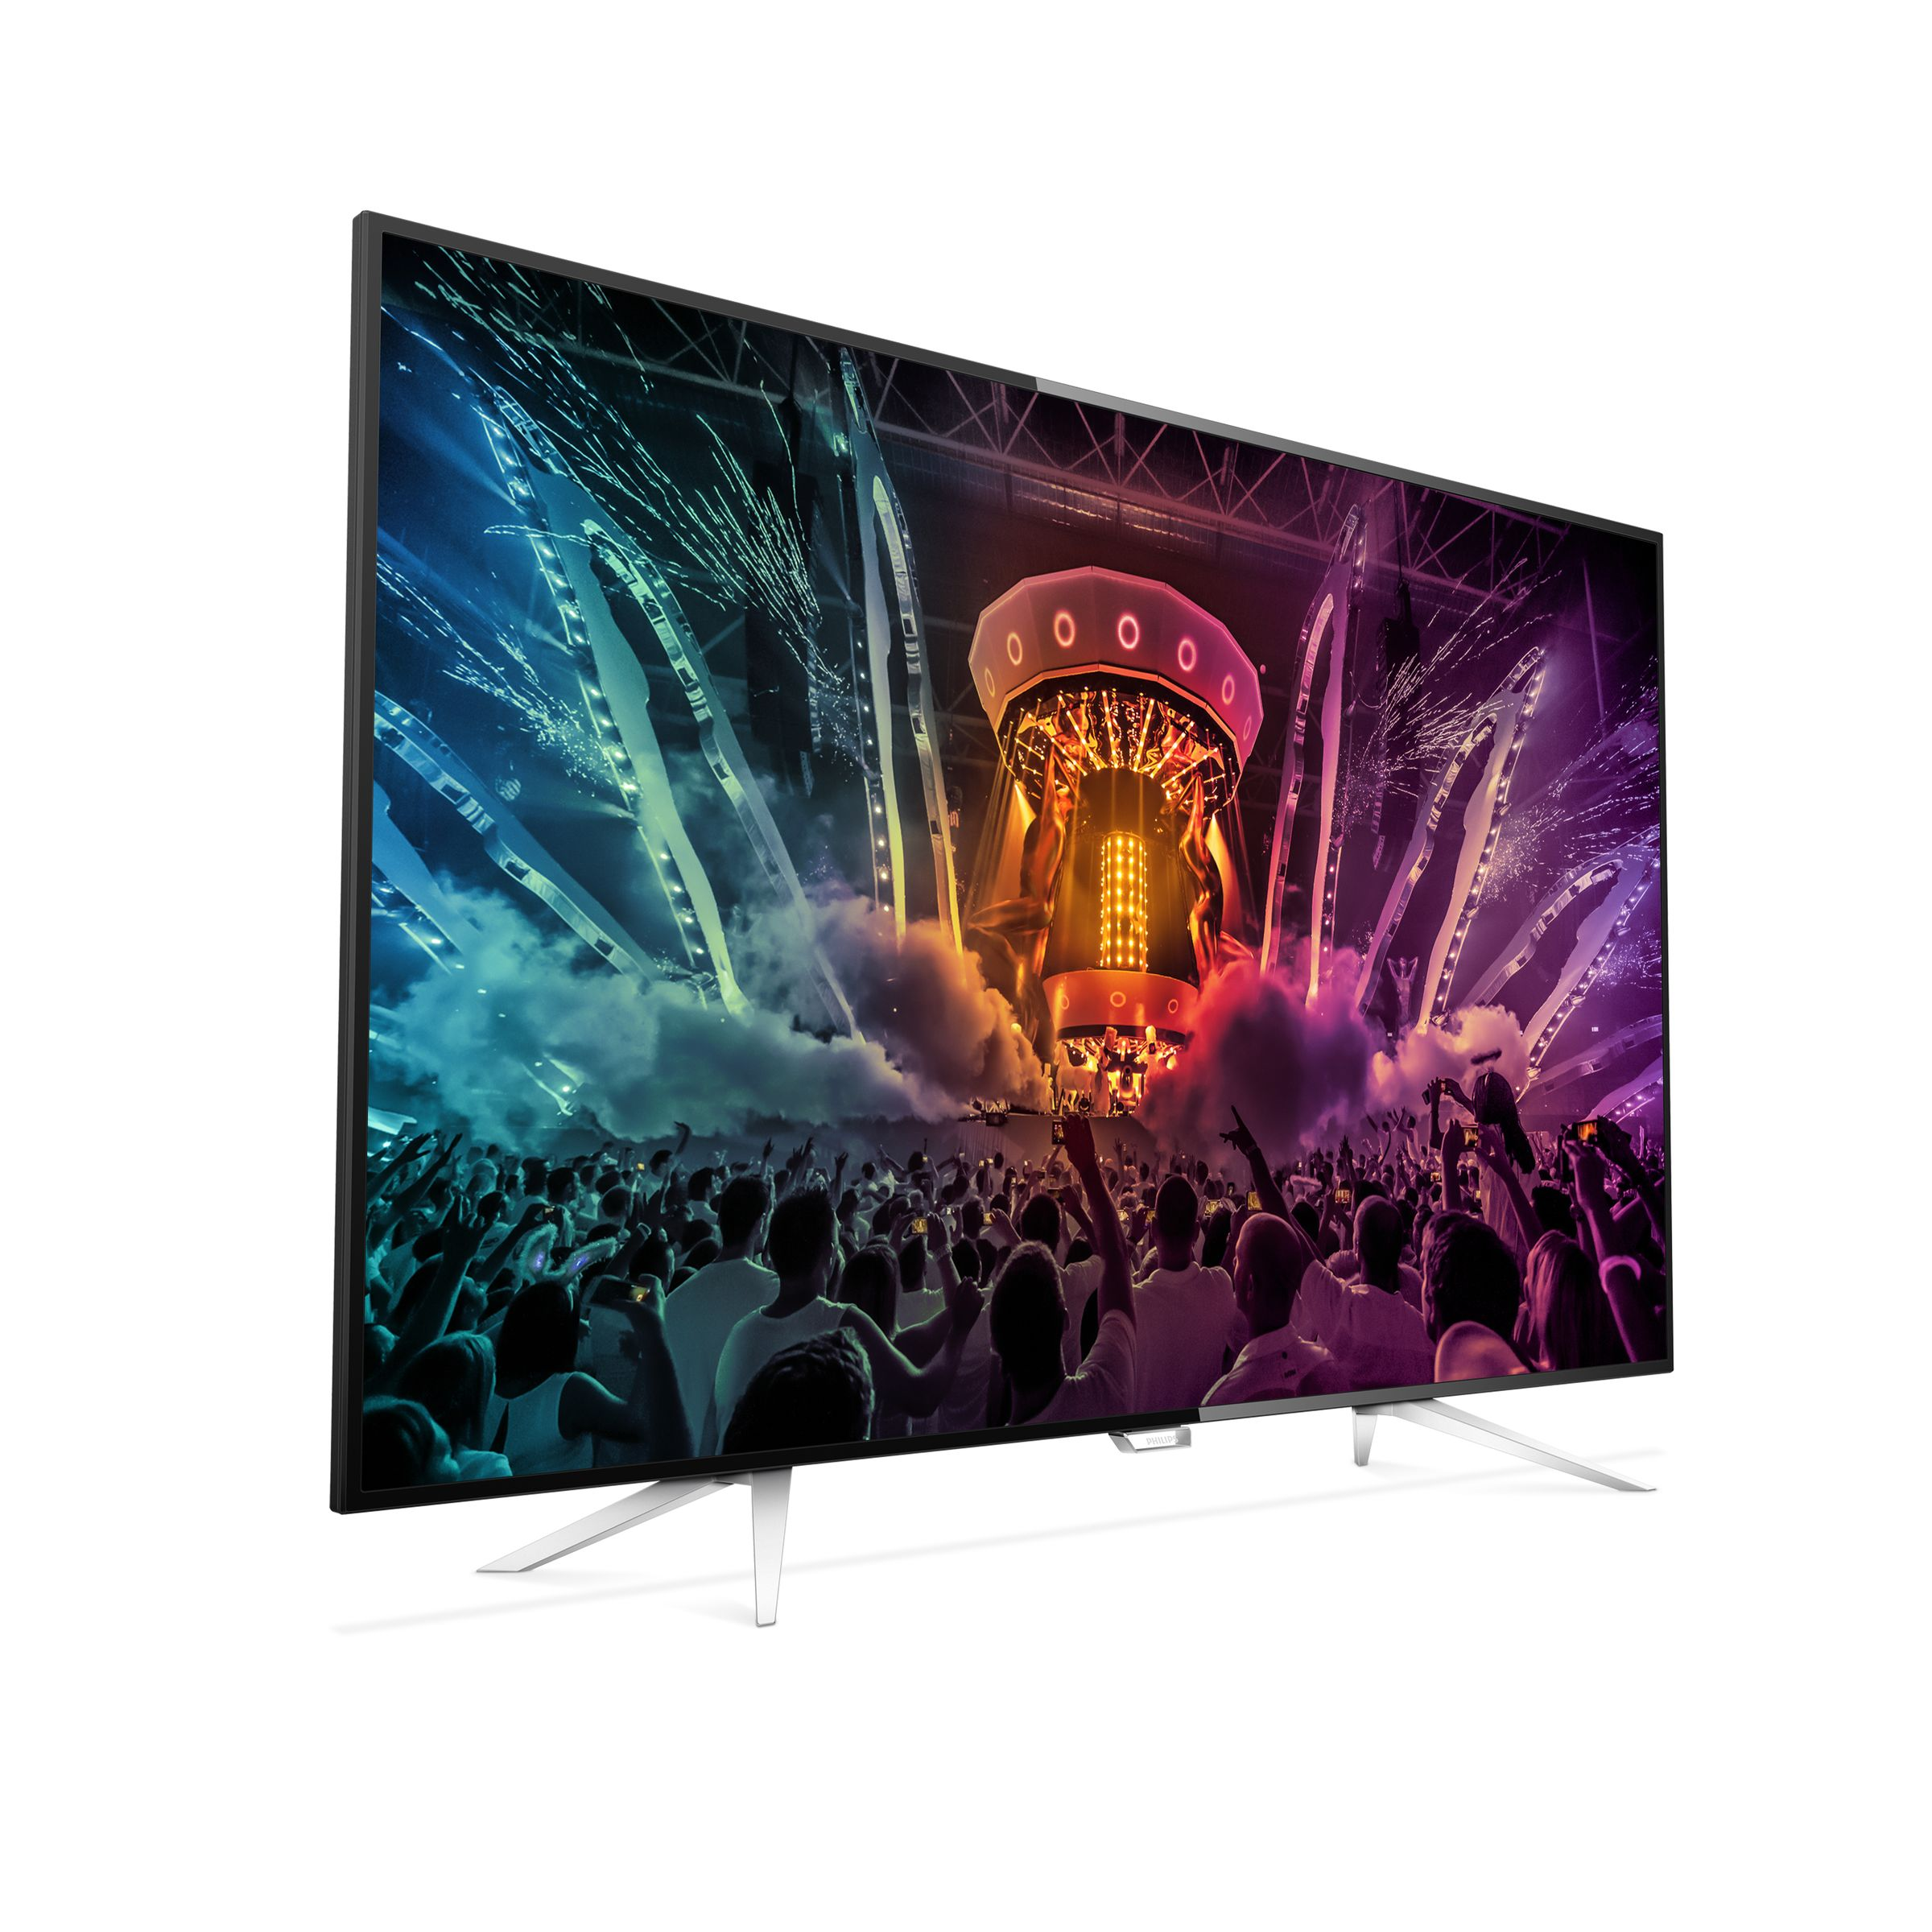 463fe4cff90a5 Product datasheet Philips 6800 series 4K Ultra Slim TV powered by ...